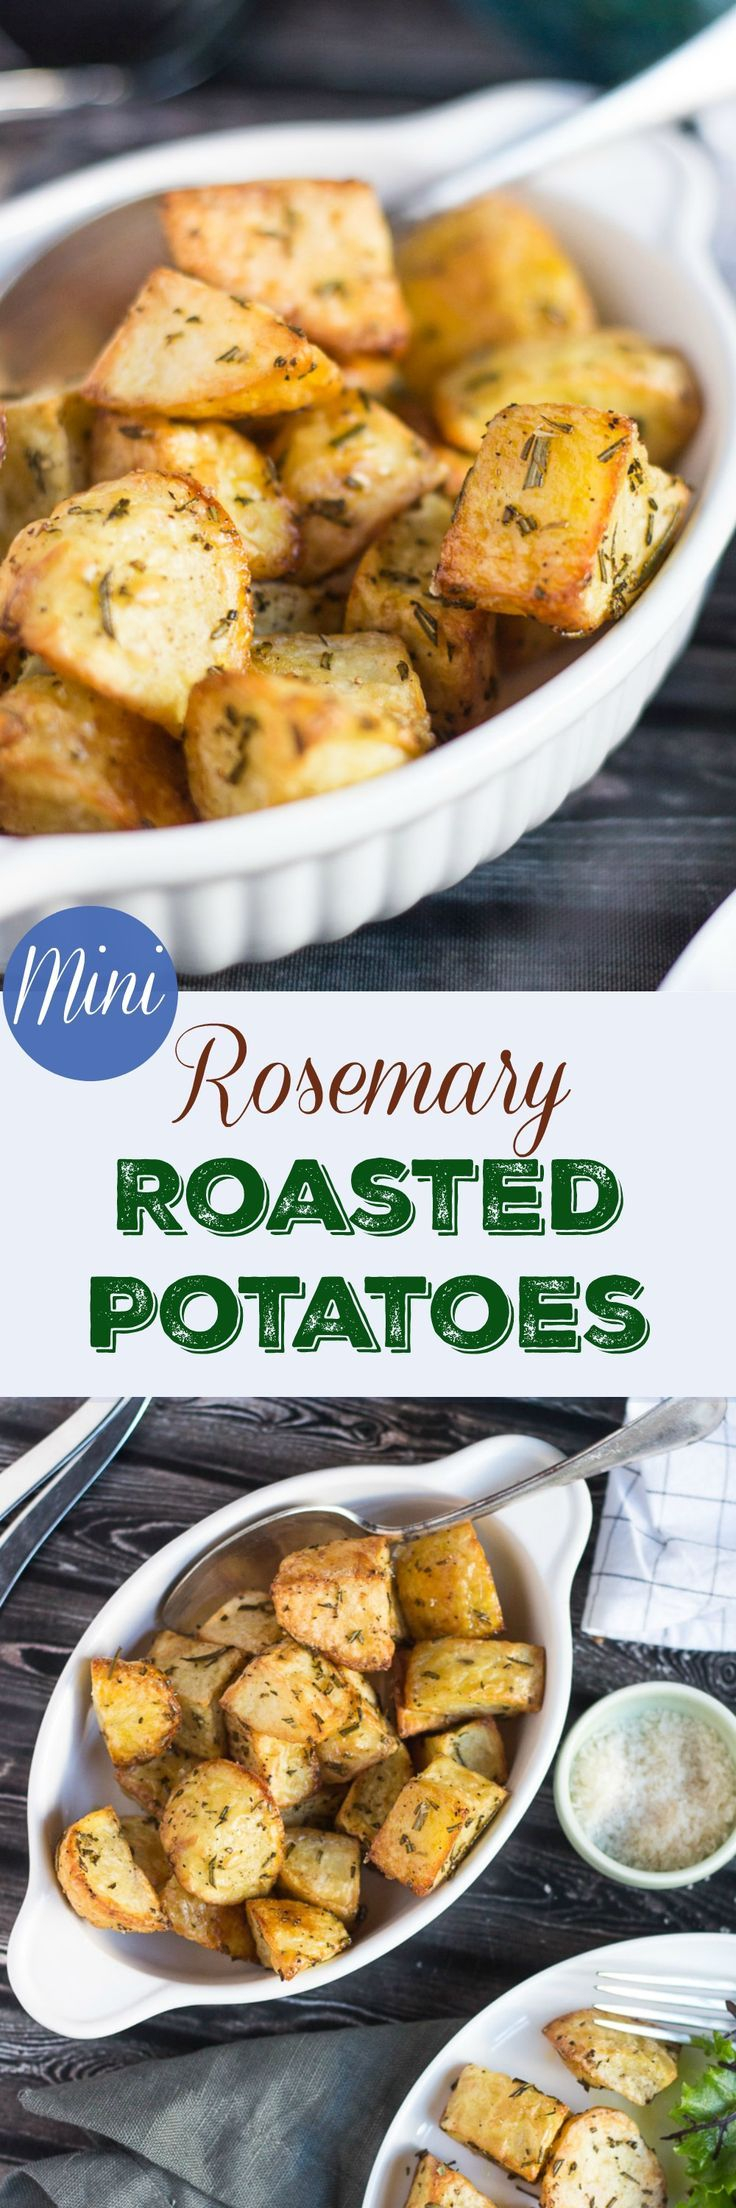 Mini Rosemary Roasted Potatoes. Crispy, crunchy and quicker to cook than conventional roast potatoes.